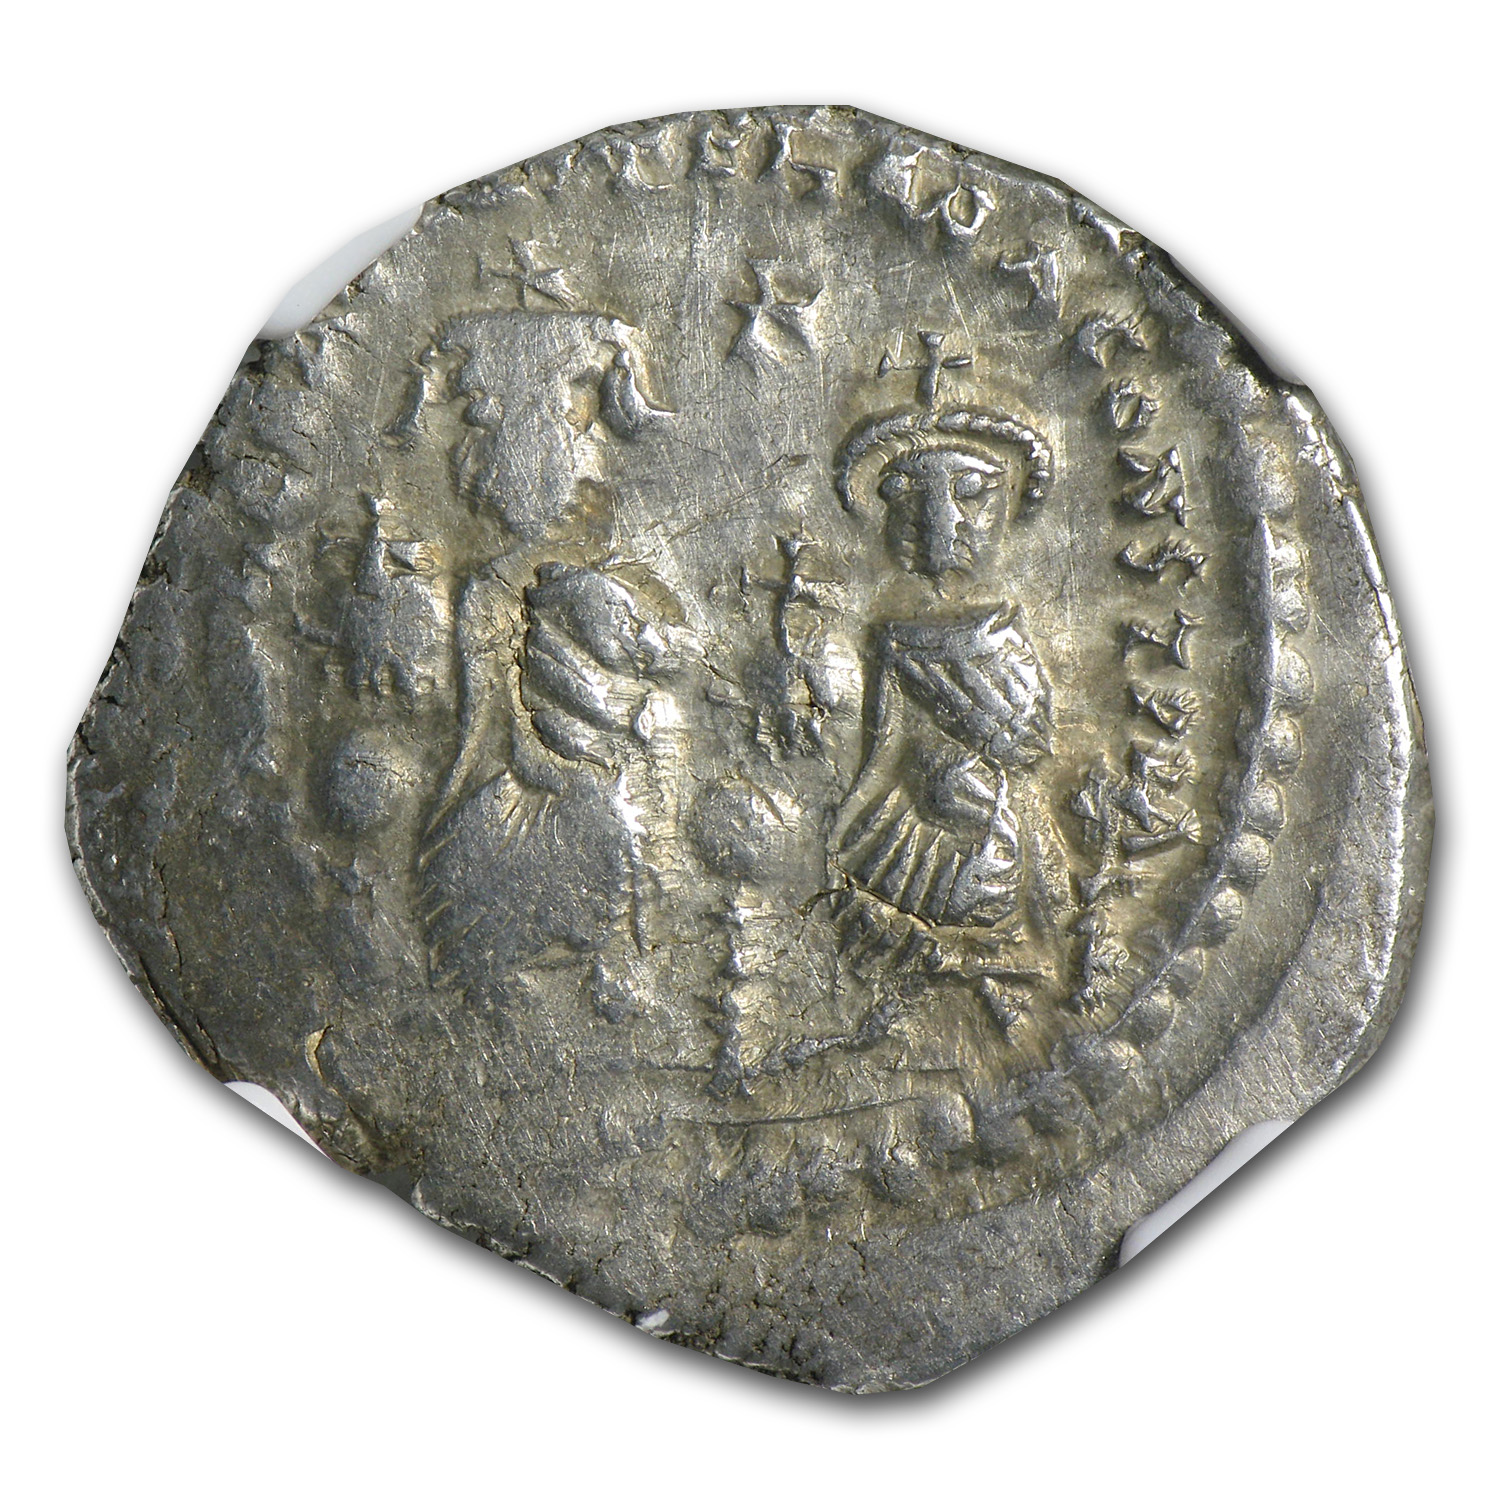 Byzantine Silver HeracIius & H.Const. Ch-VF NGC (613-641 AD)